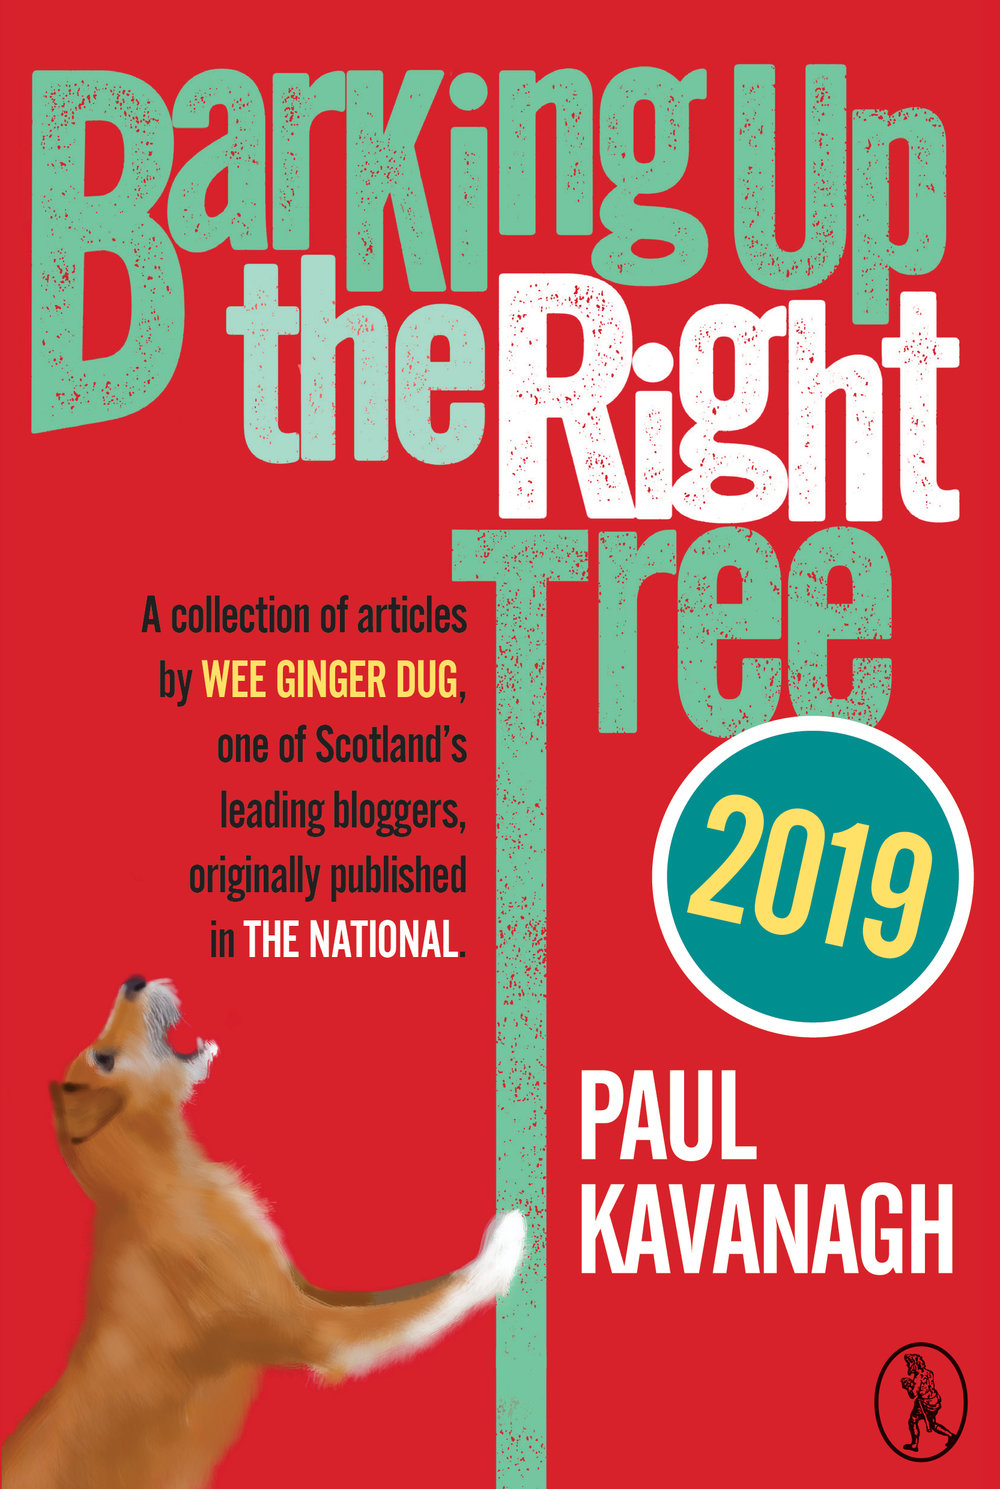 Barking up the Right Tree 2019